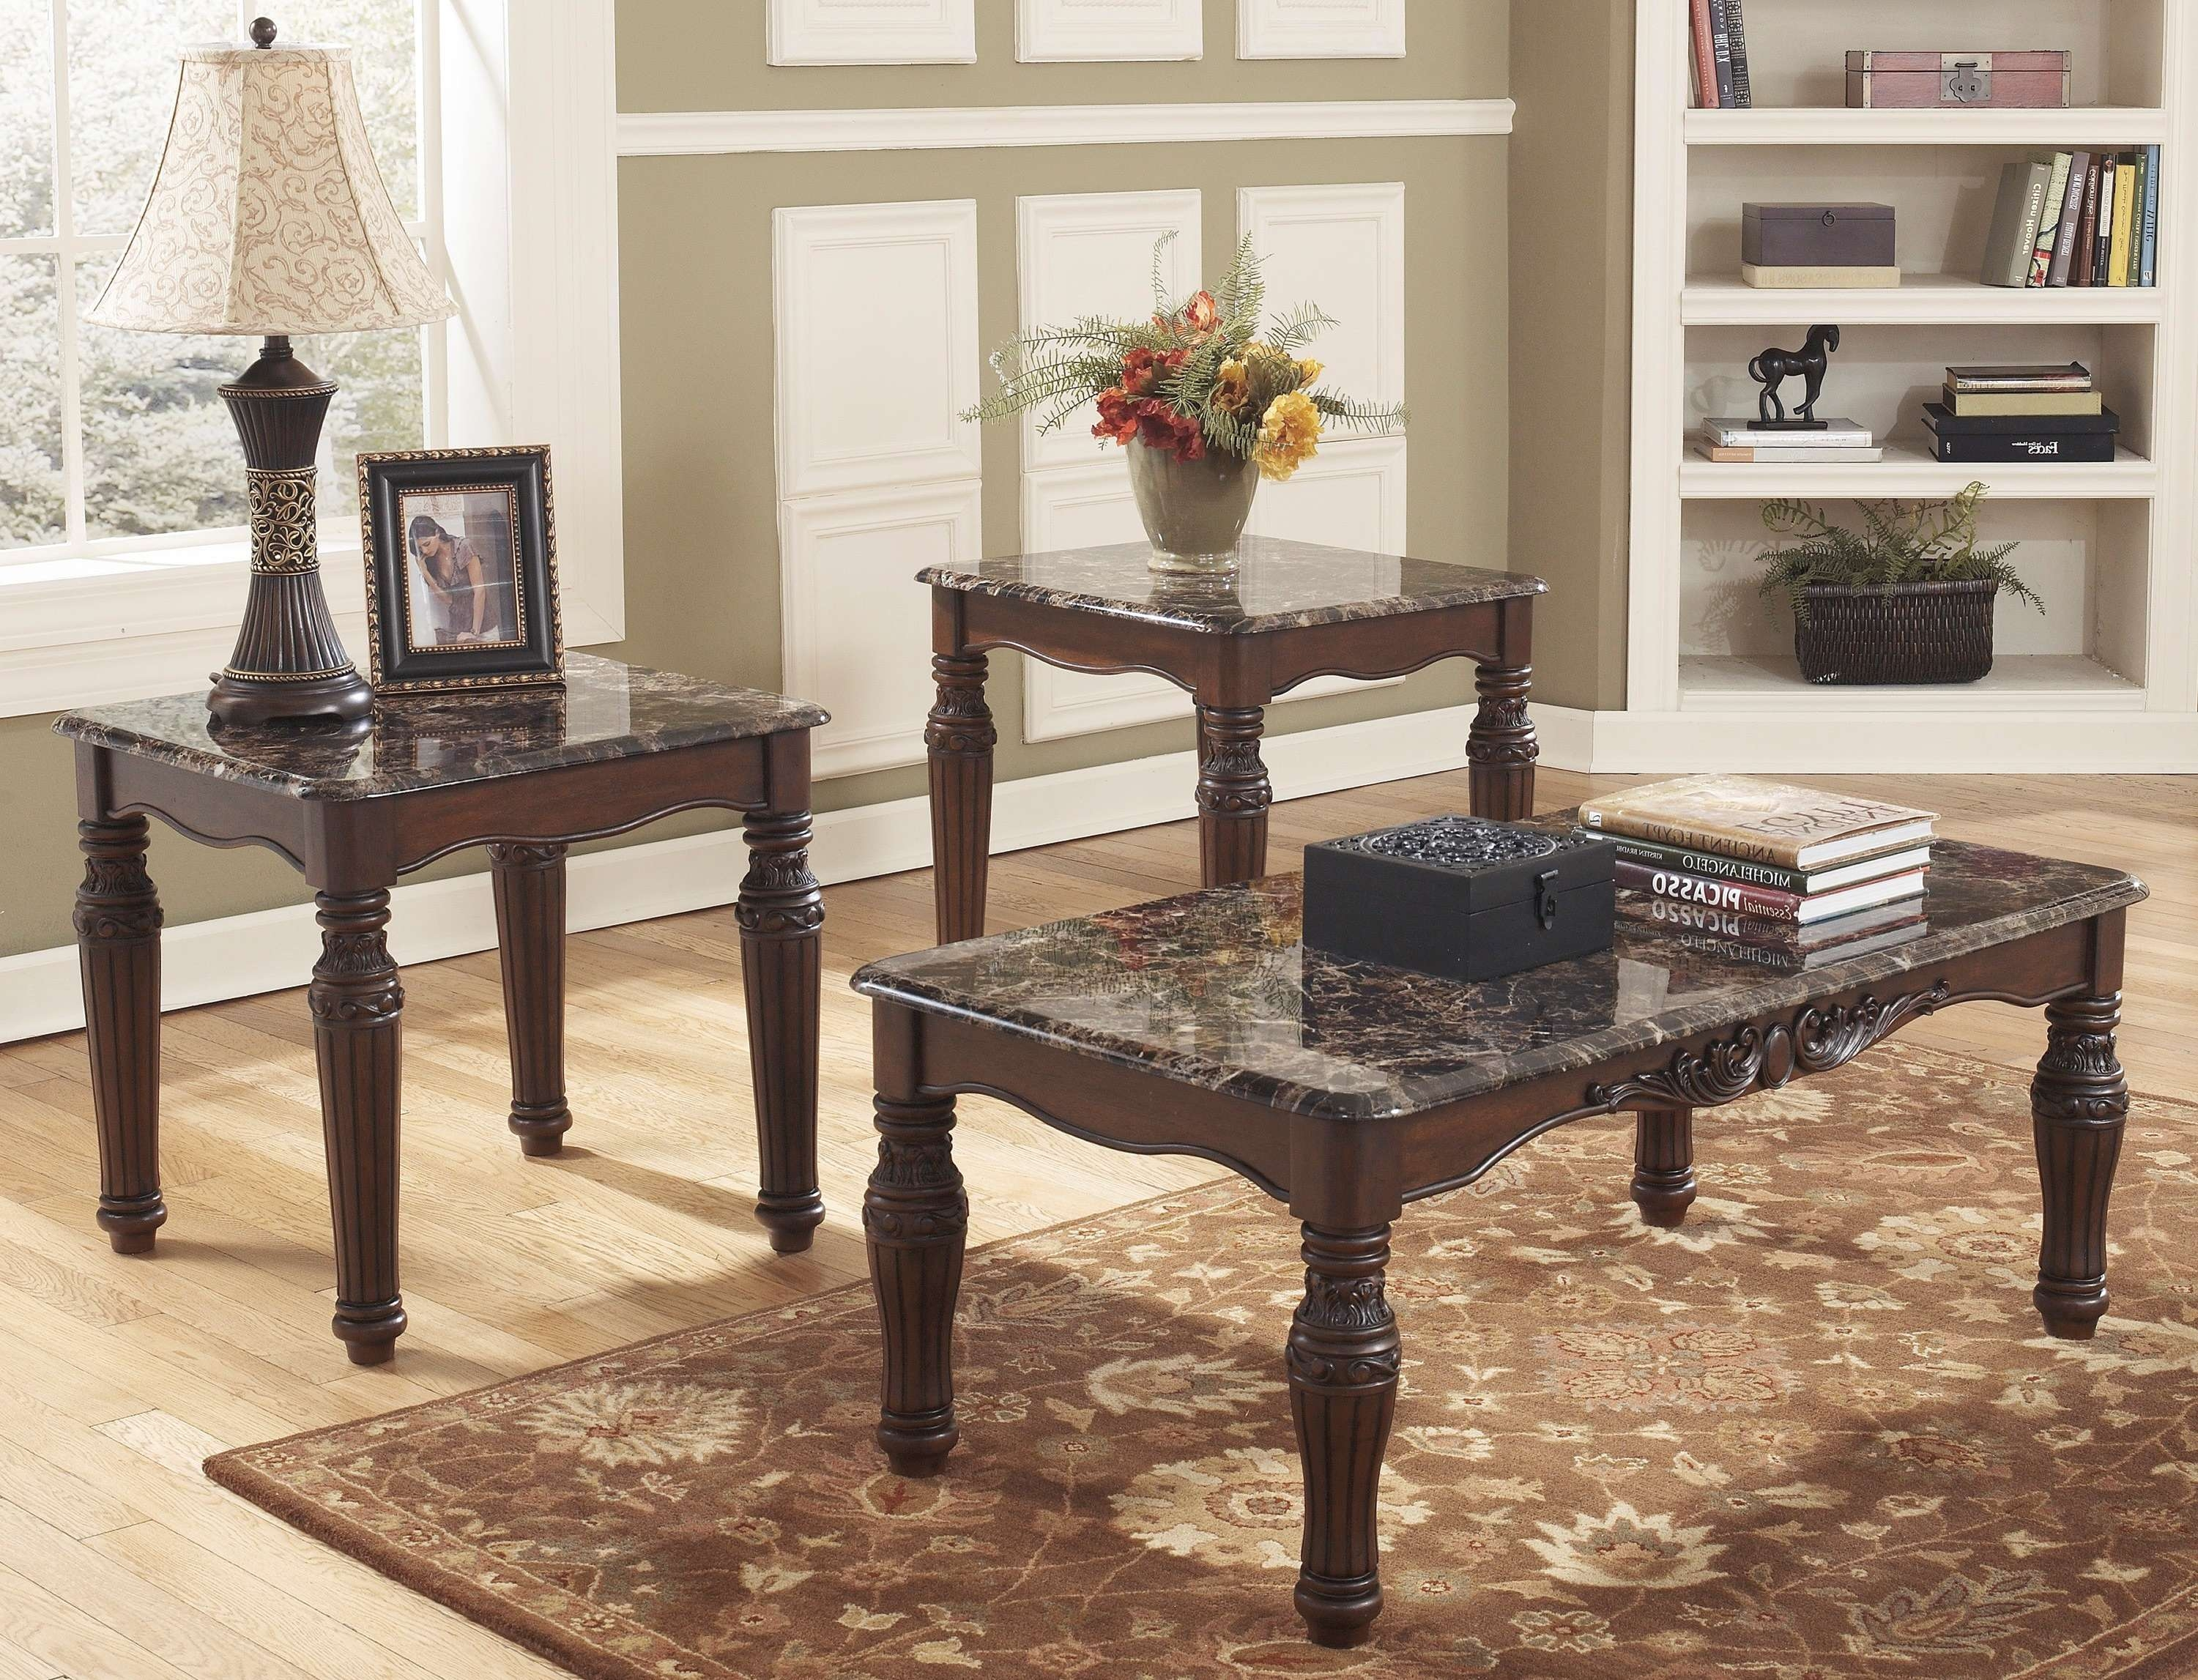 Coffee Tables : End Table Sets Round Coffee With Storage Ashley Intended For 2018 Coffee Table With Matching End Tables (View 5 of 20)